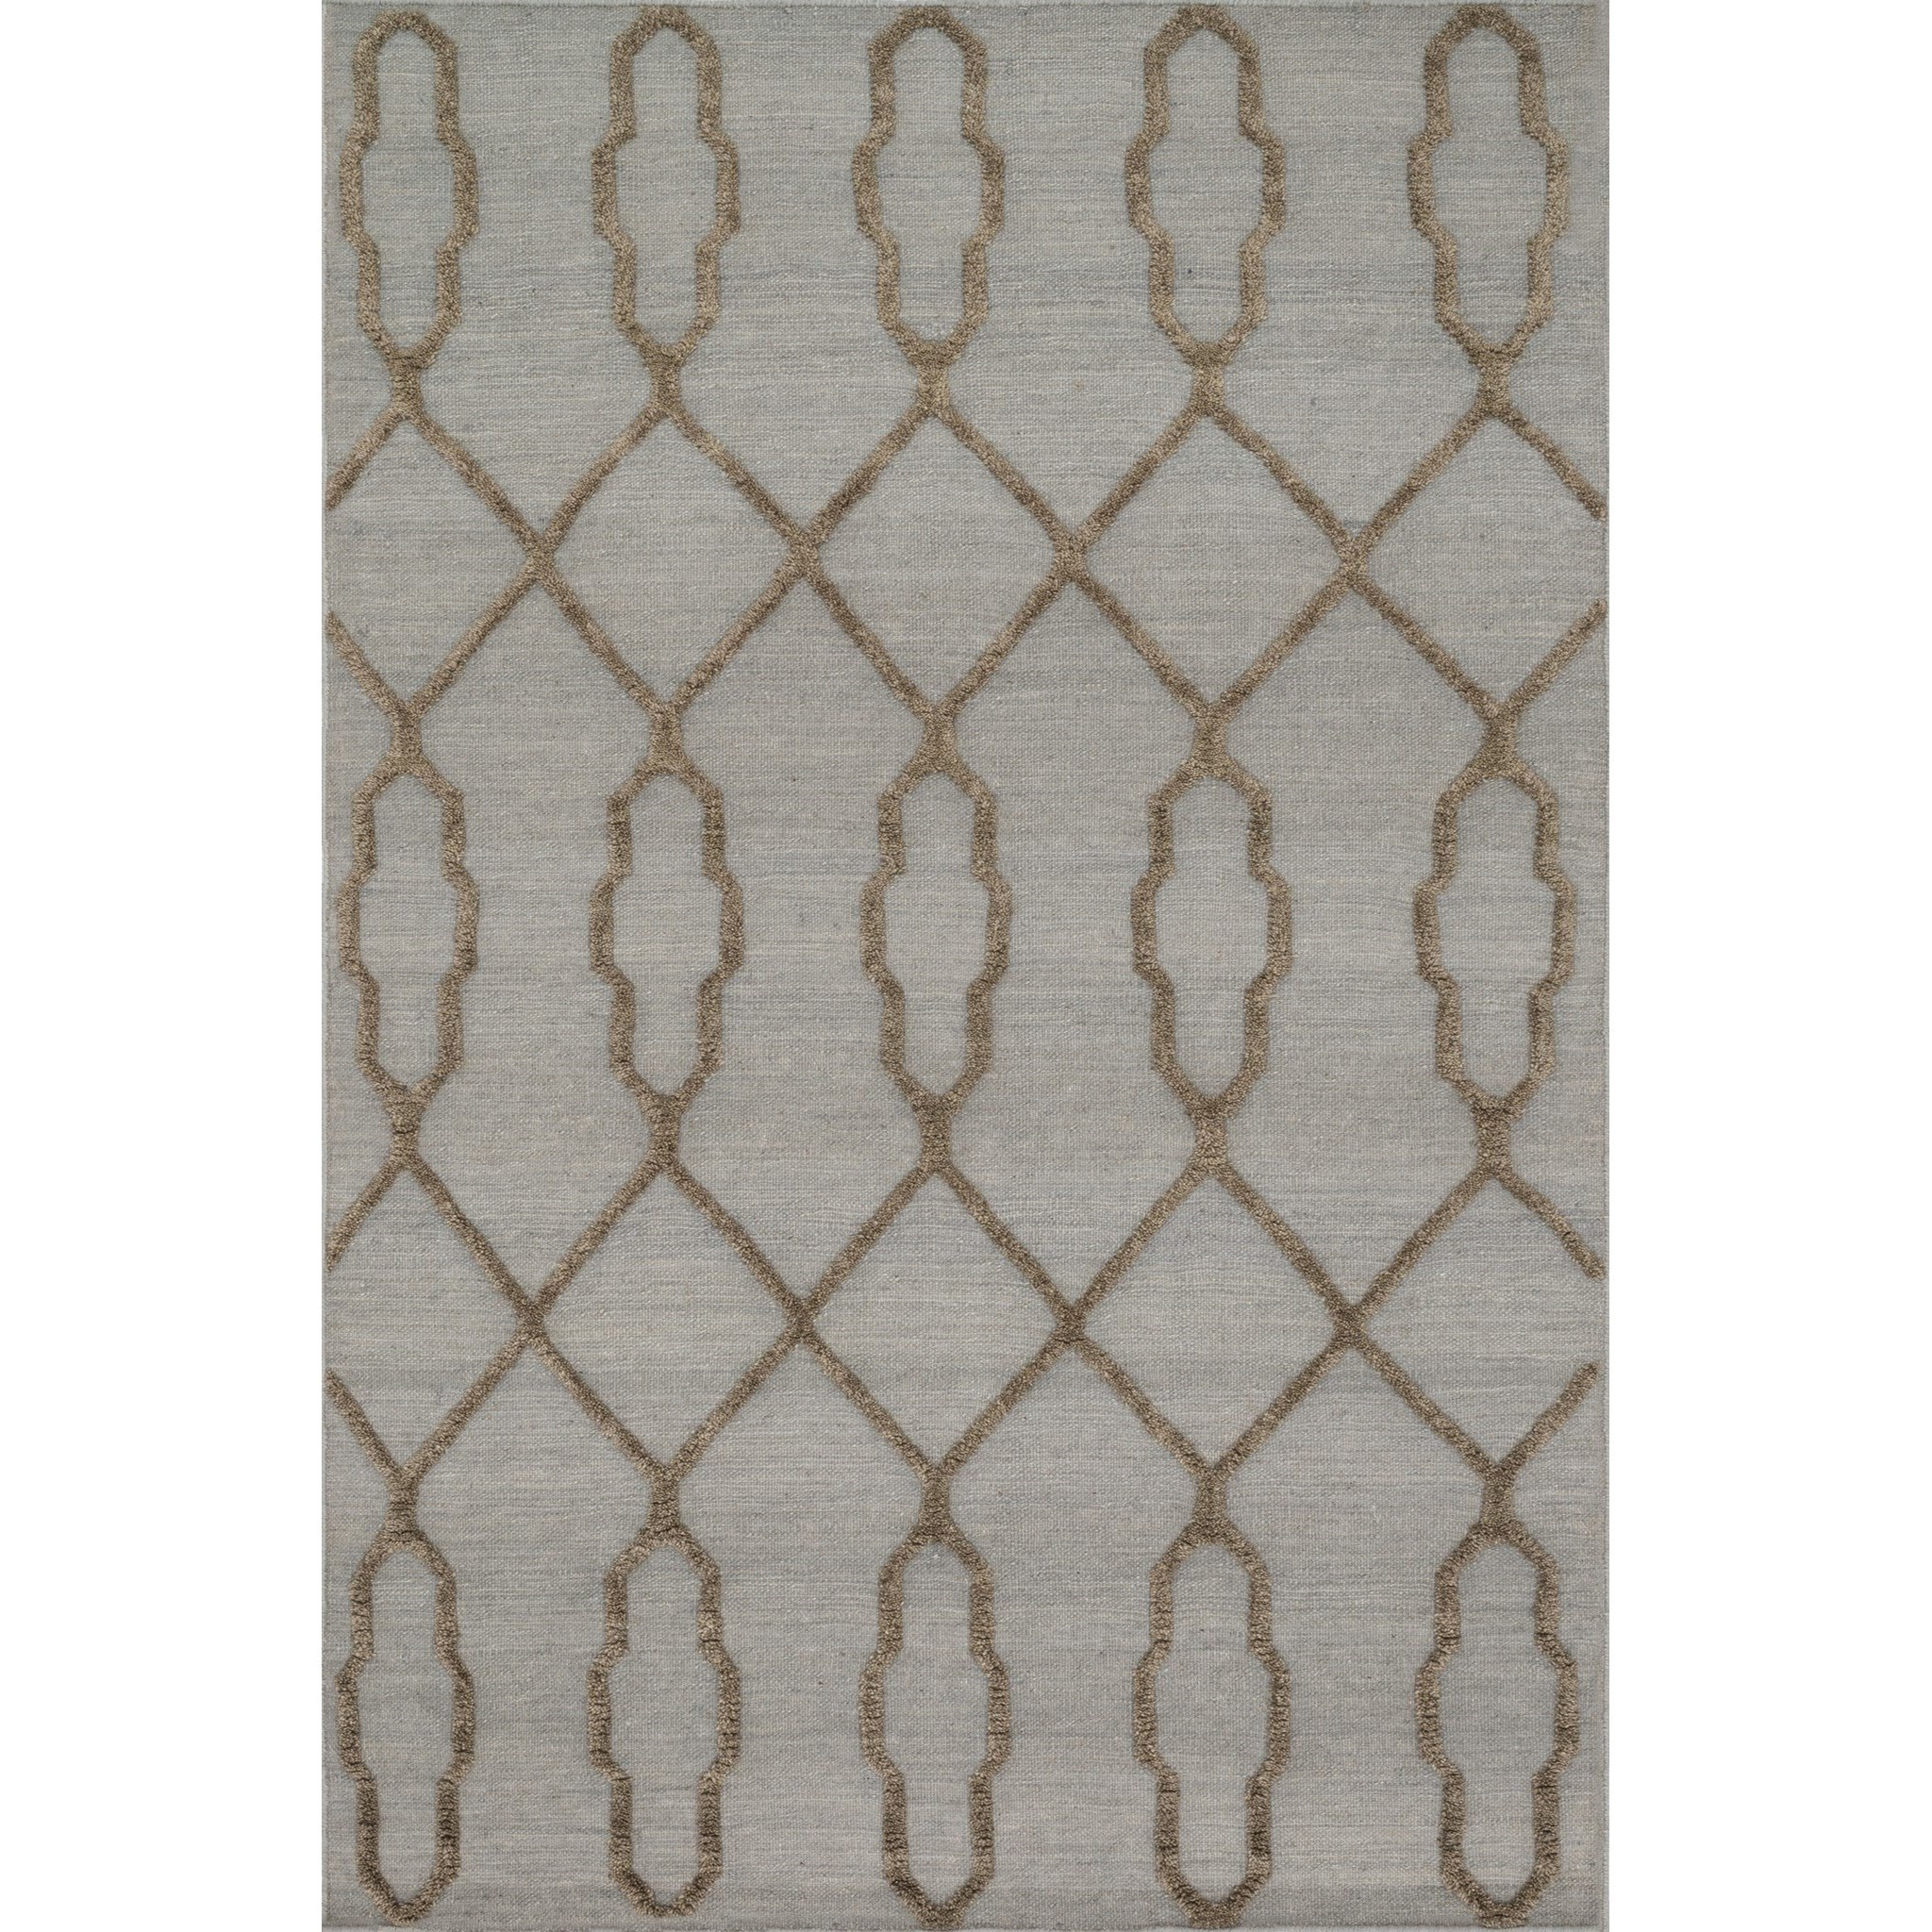 """Adler 5'-0"""" x 7'-6"""" Area Rug by Loloi Rugs at Virginia Furniture Market"""